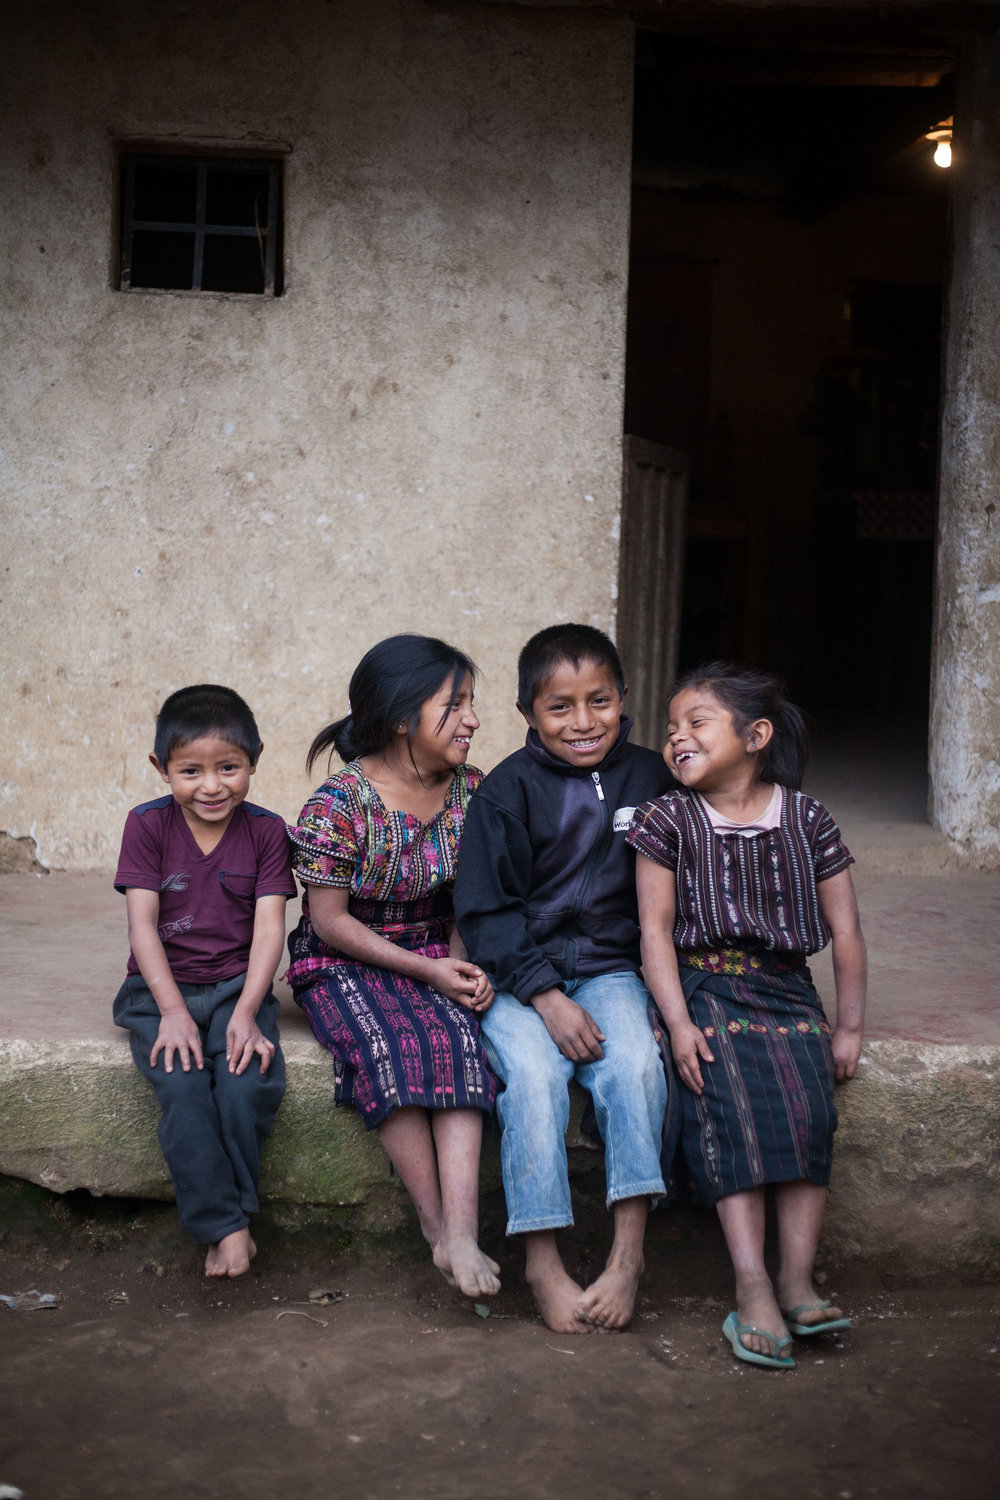 Mayra and her siblings outside their home in El Barranco, Guatemala. Photo for Mayan Families, Community Development Program.